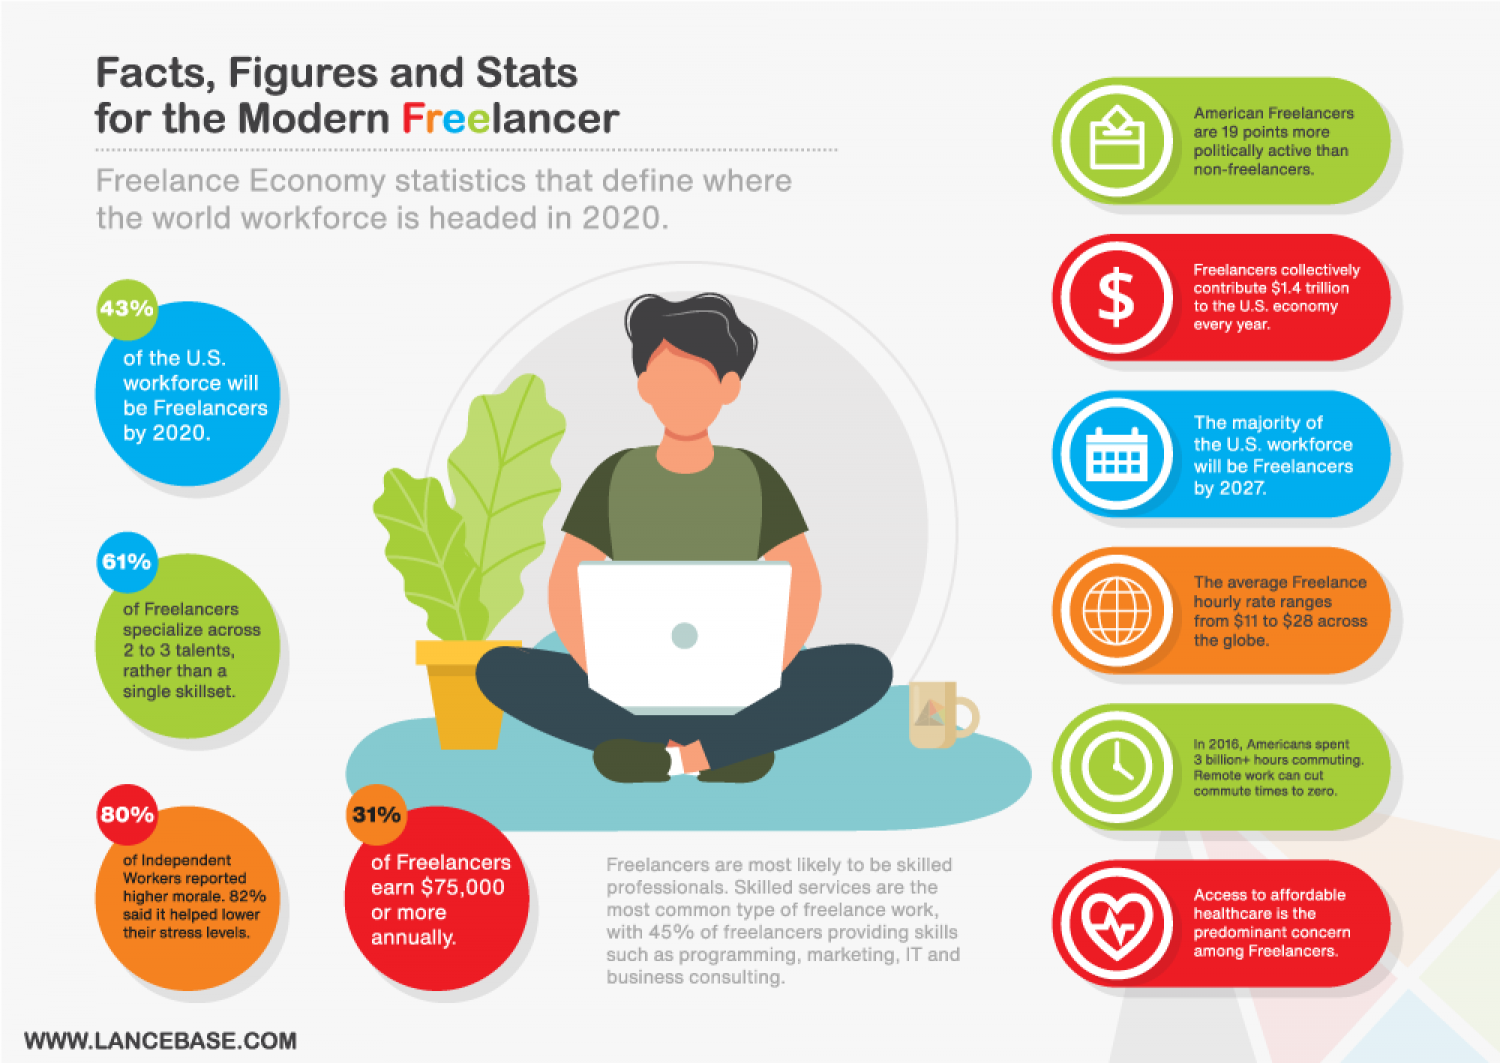 Facts, Figures and Stats for the Modern Freelancer Infographic